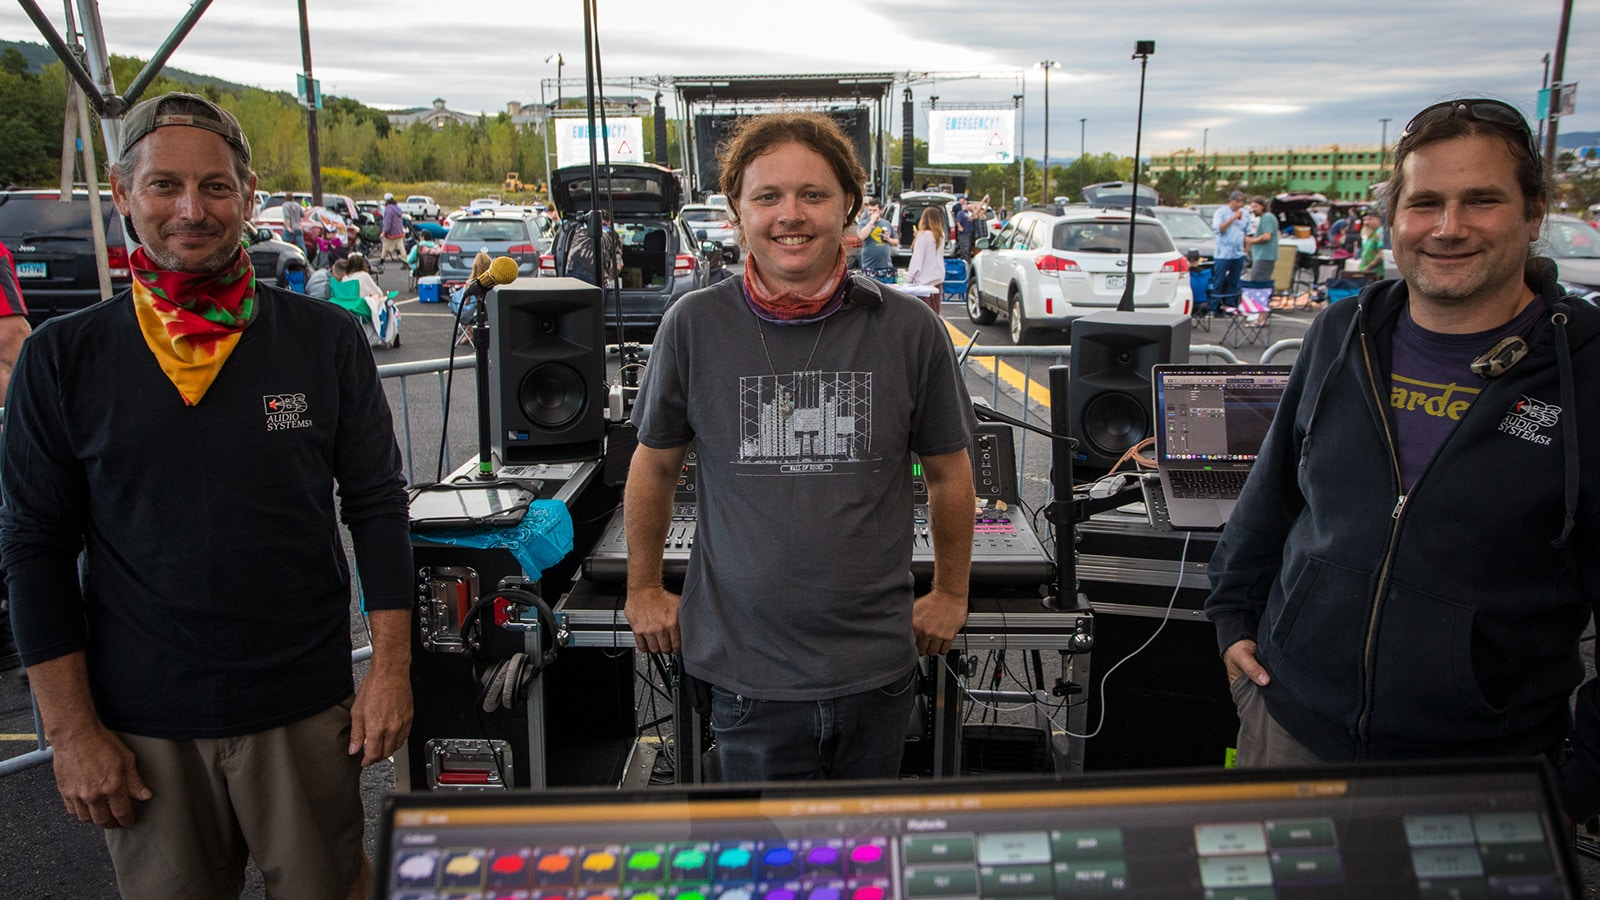 (L-R) Dave Brotman, DBS Audio Systems President; Andy Lytle, Billy Strings FOH Engineer; Mike Shoulson, DBS Audio Systems Vice President